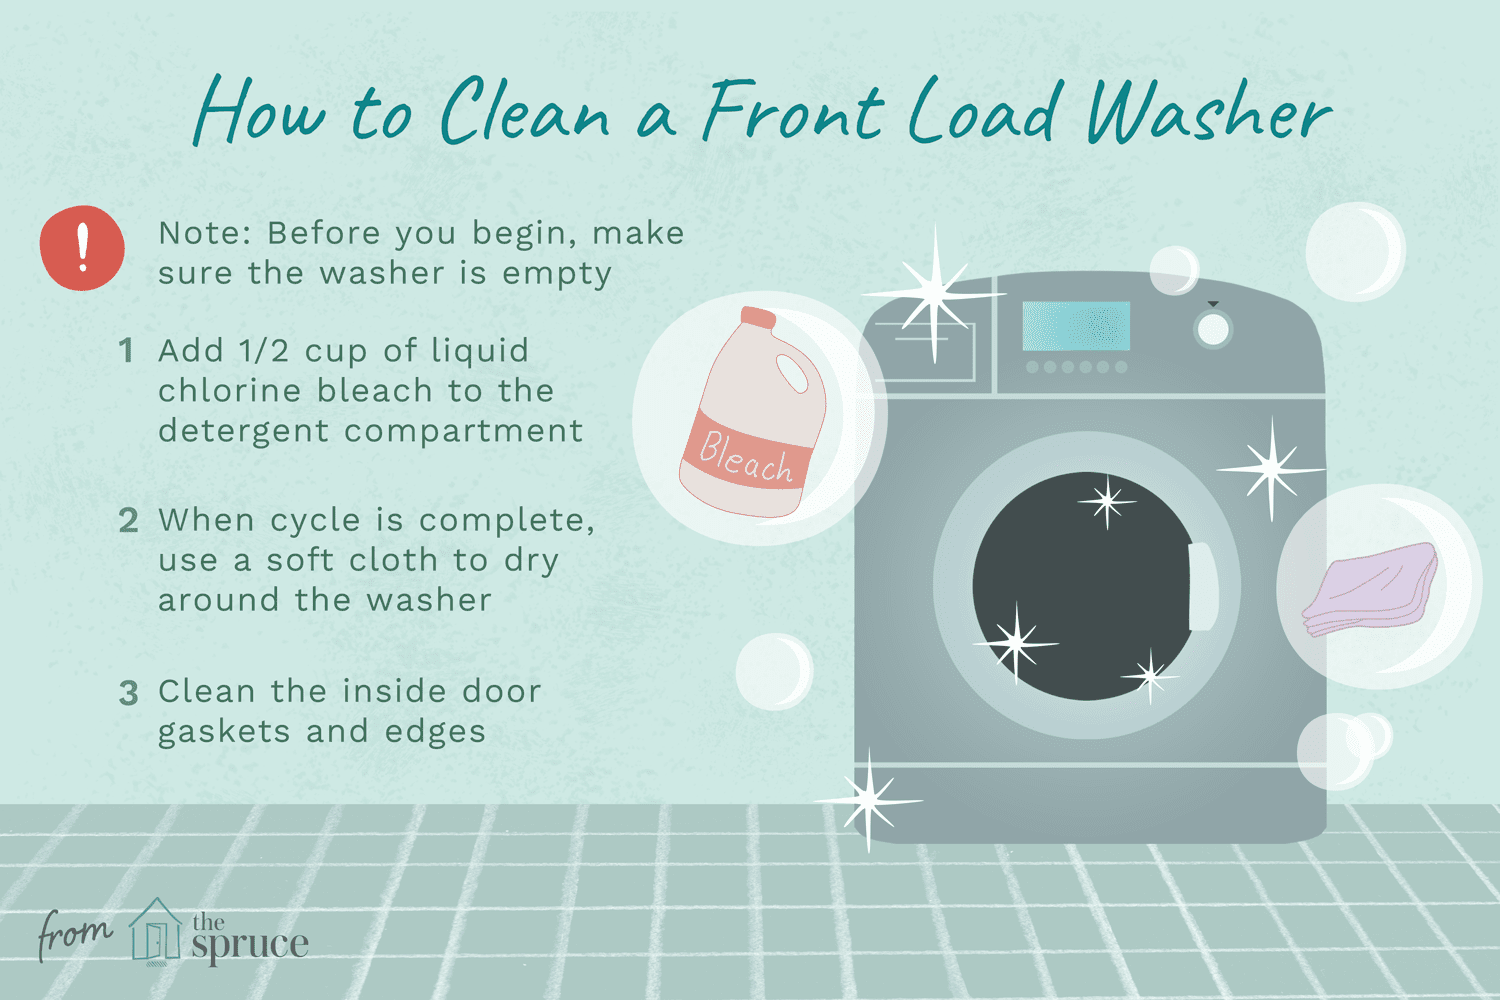 How To Clean The Outside Of Washer